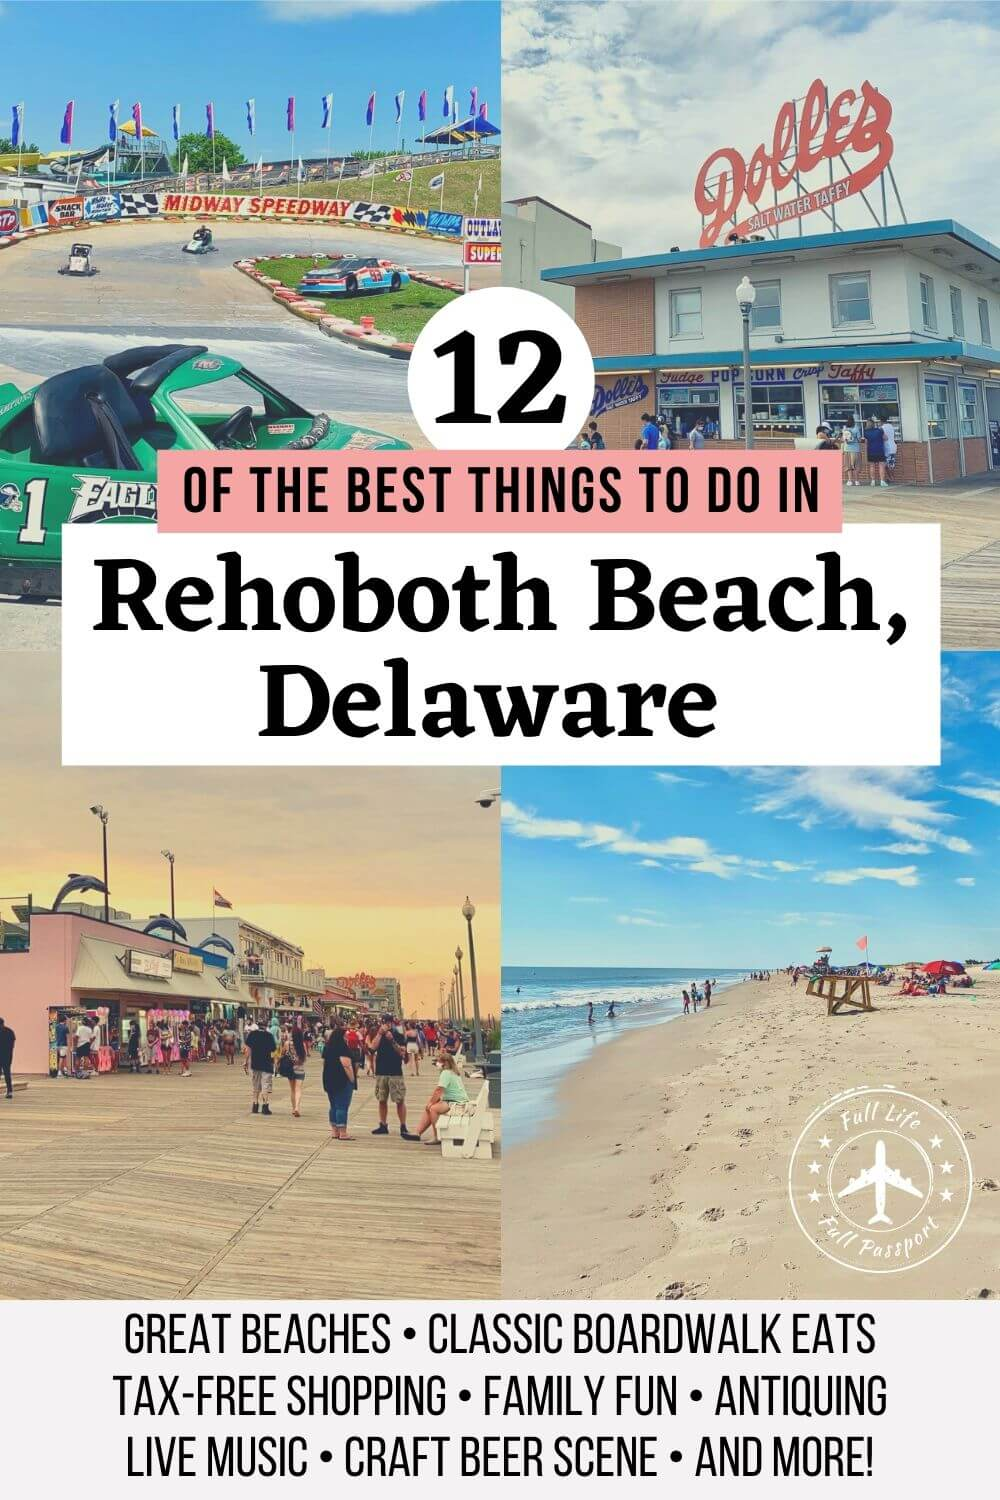 12 of the Best Things to Do in Rehoboth Beach, Delaware